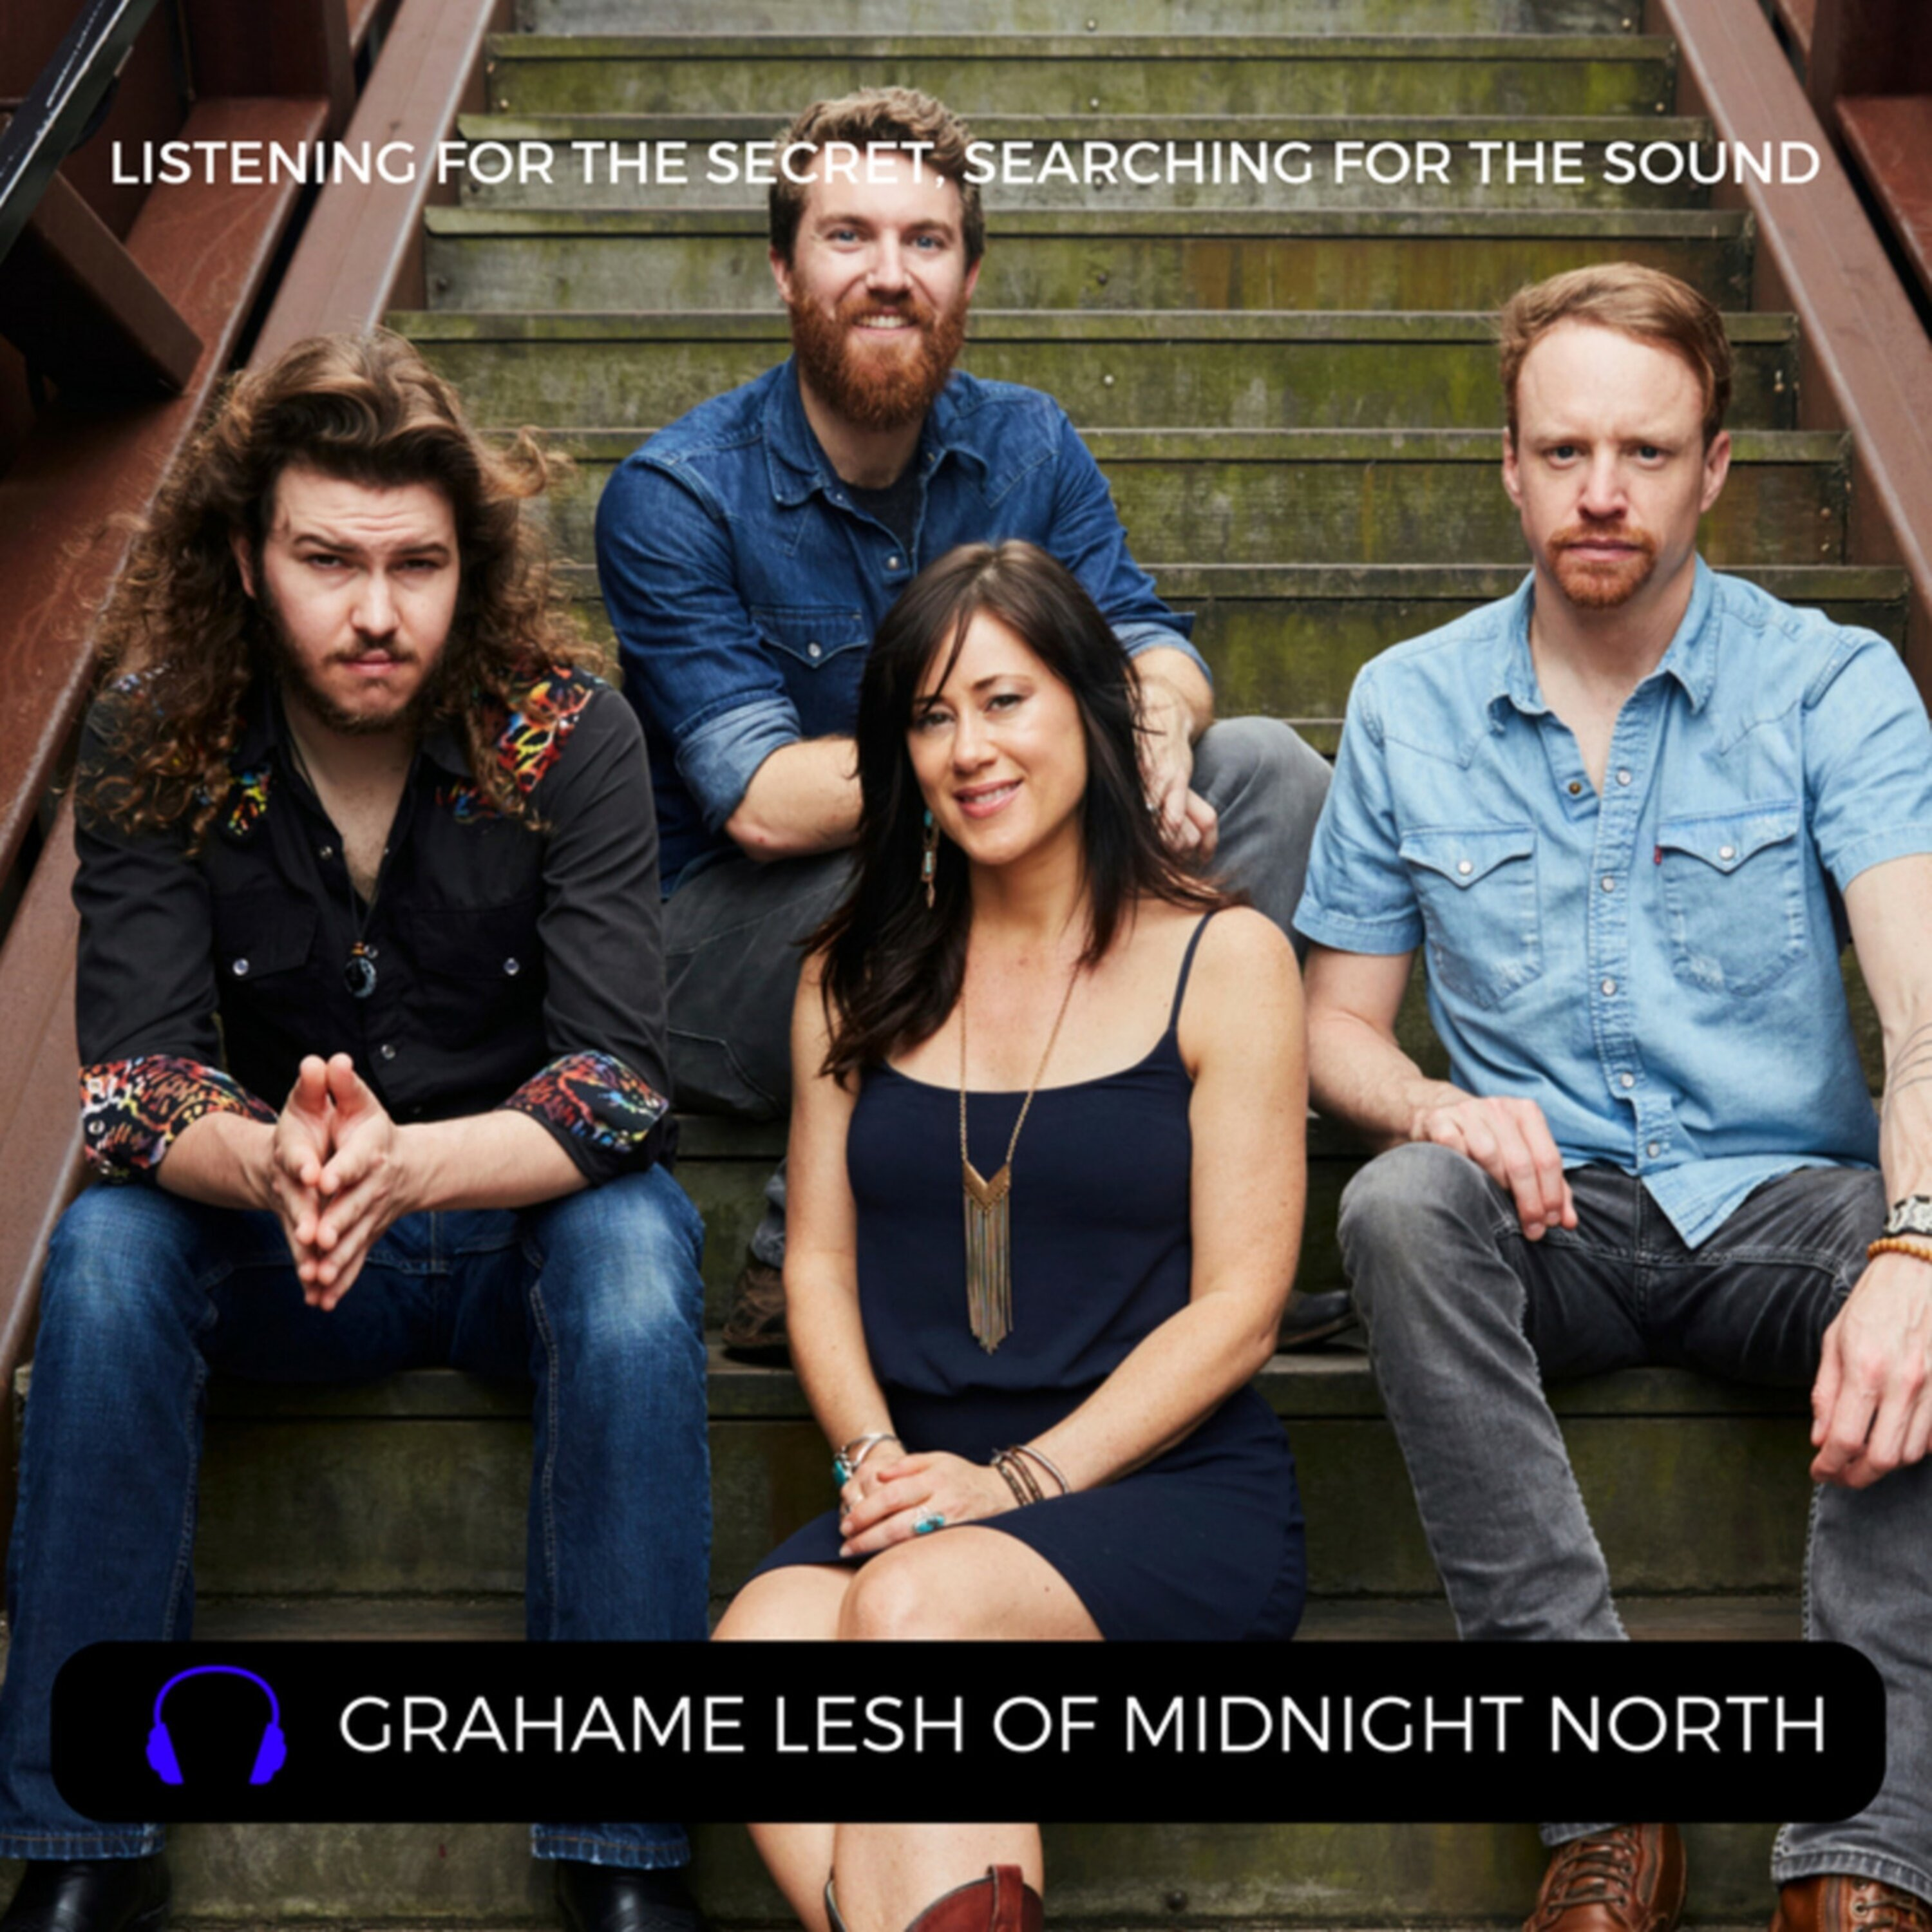 Episode 32: Grahame Lesh of Midnight North